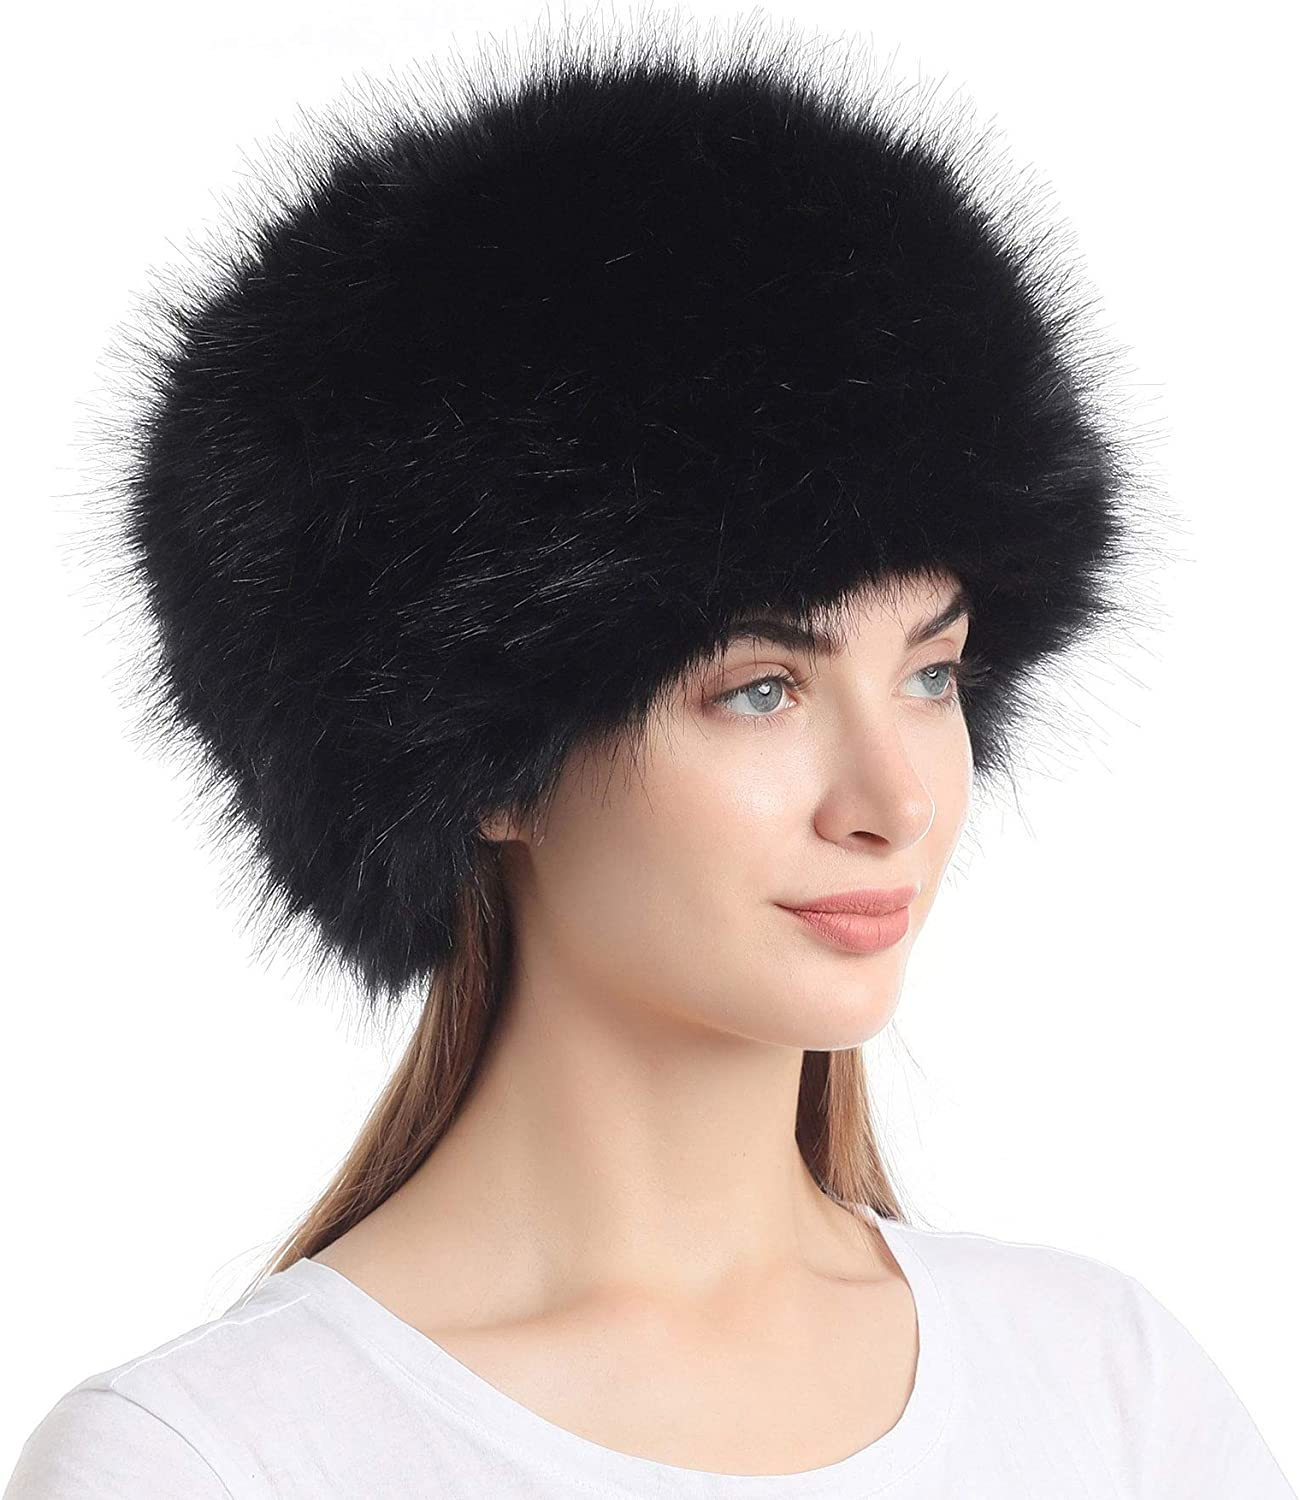 Women's Faux Fur Hat for Winter with Stretch Cossack Russian Style